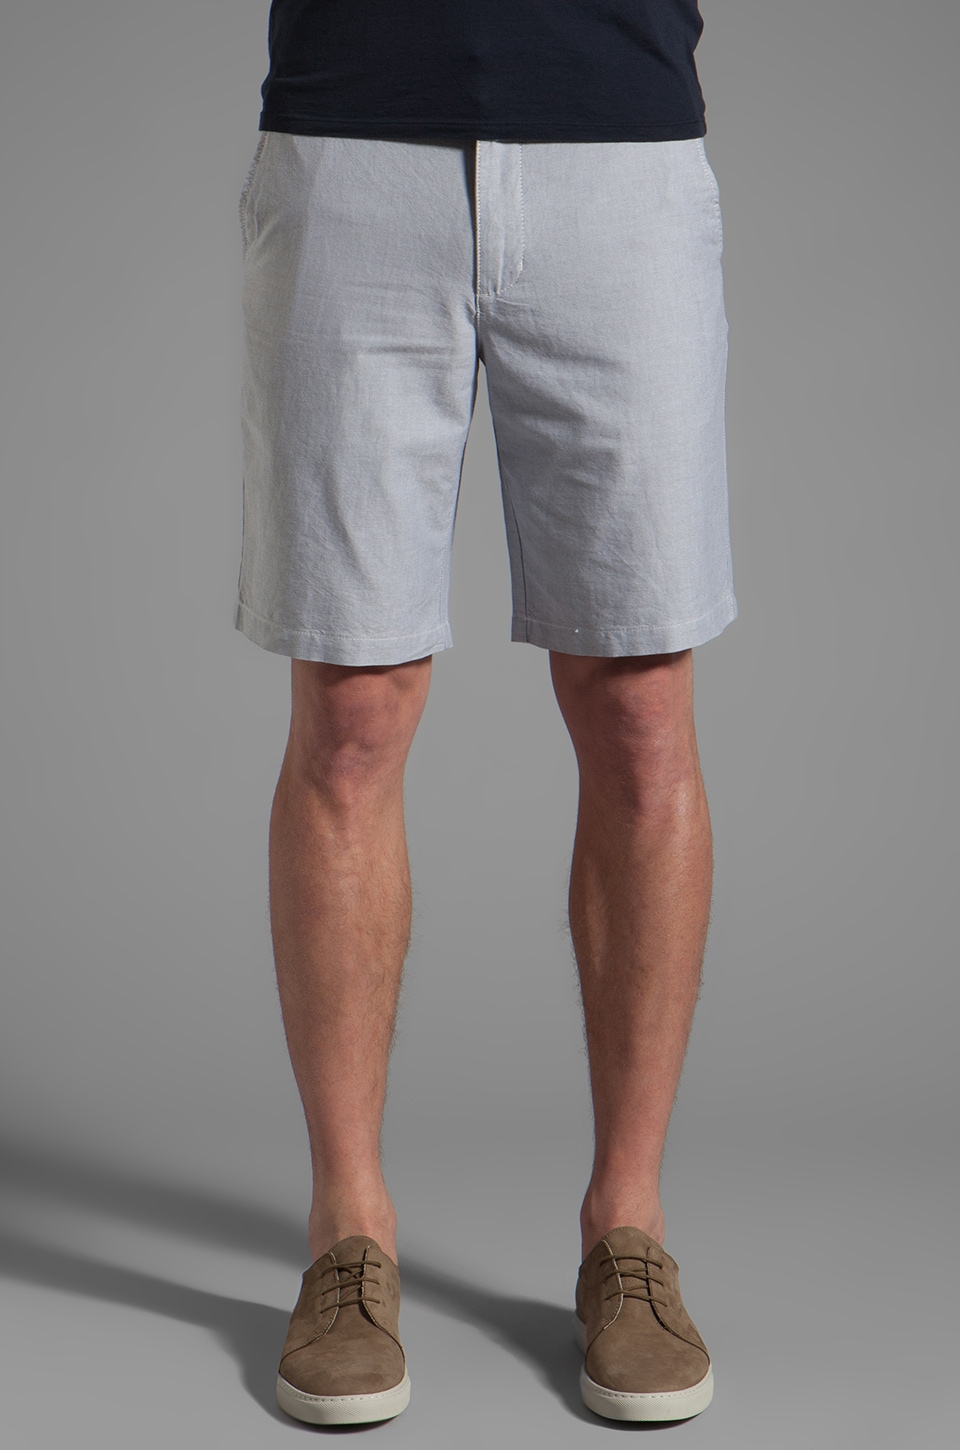 RVCA OXO Short II in Gray